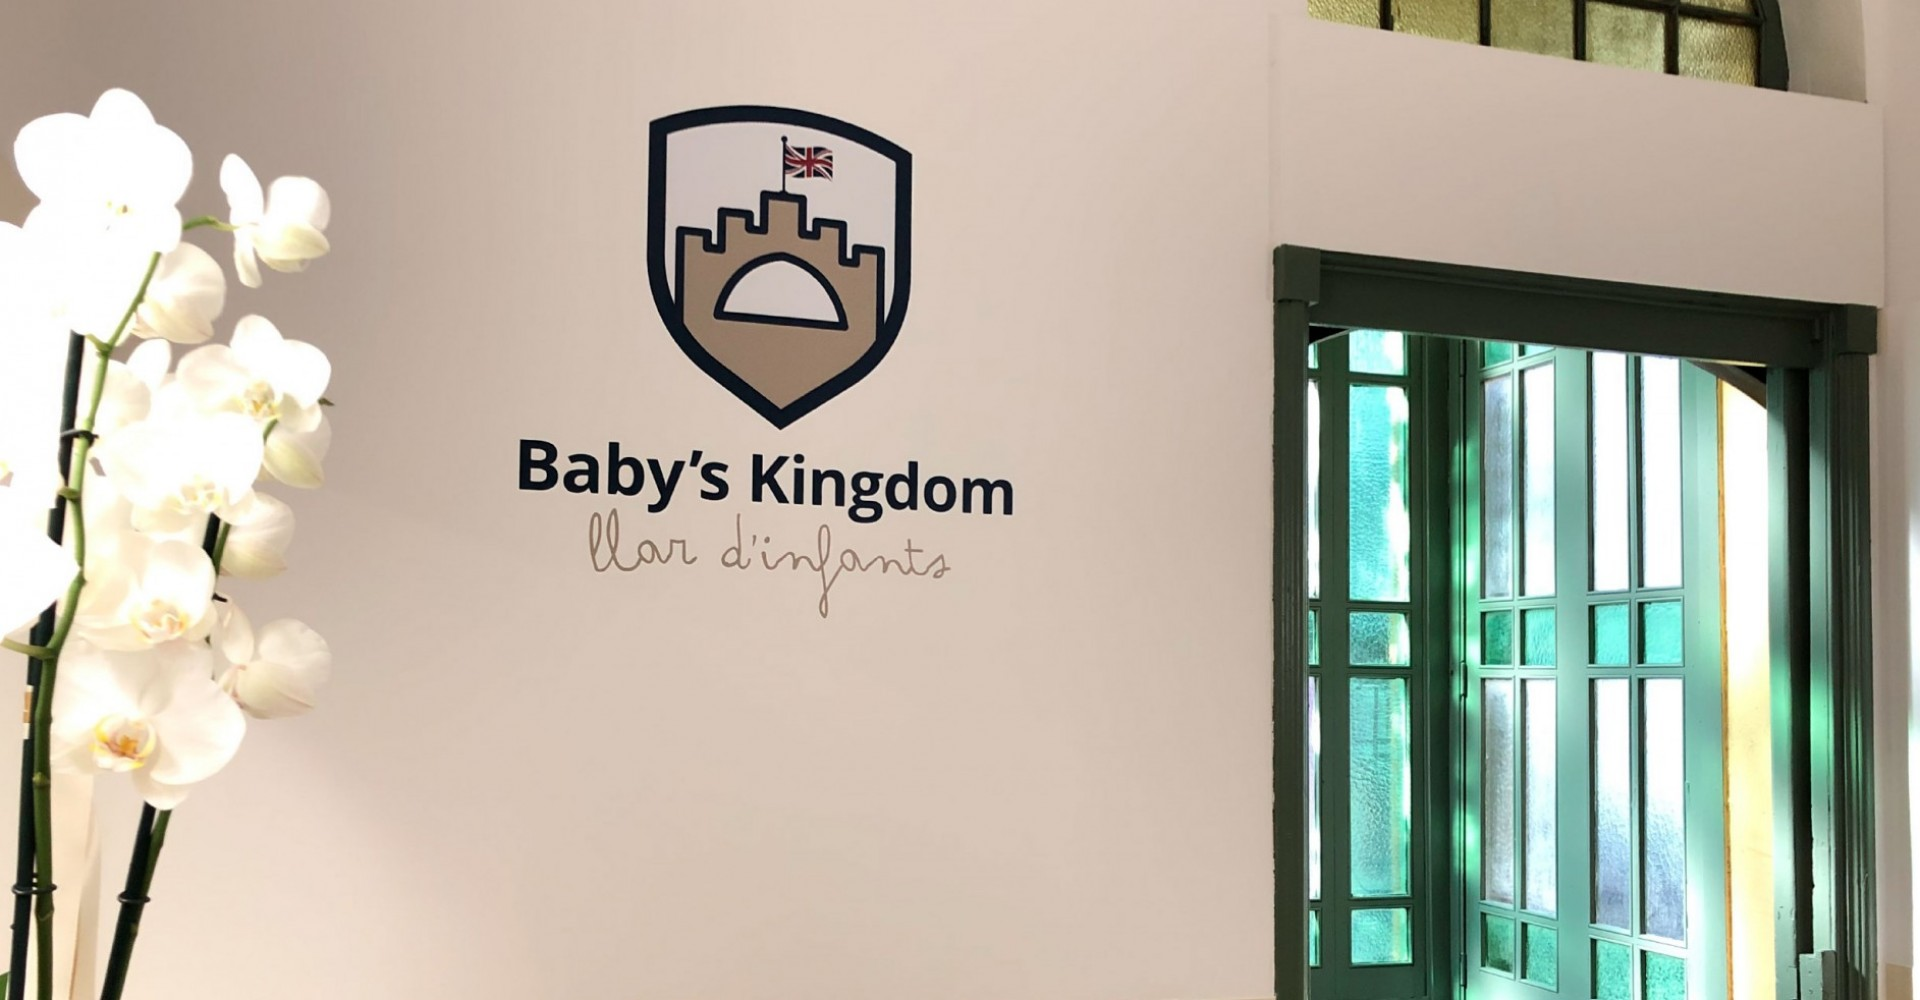 Baby's Kingdom - Llar d'infants